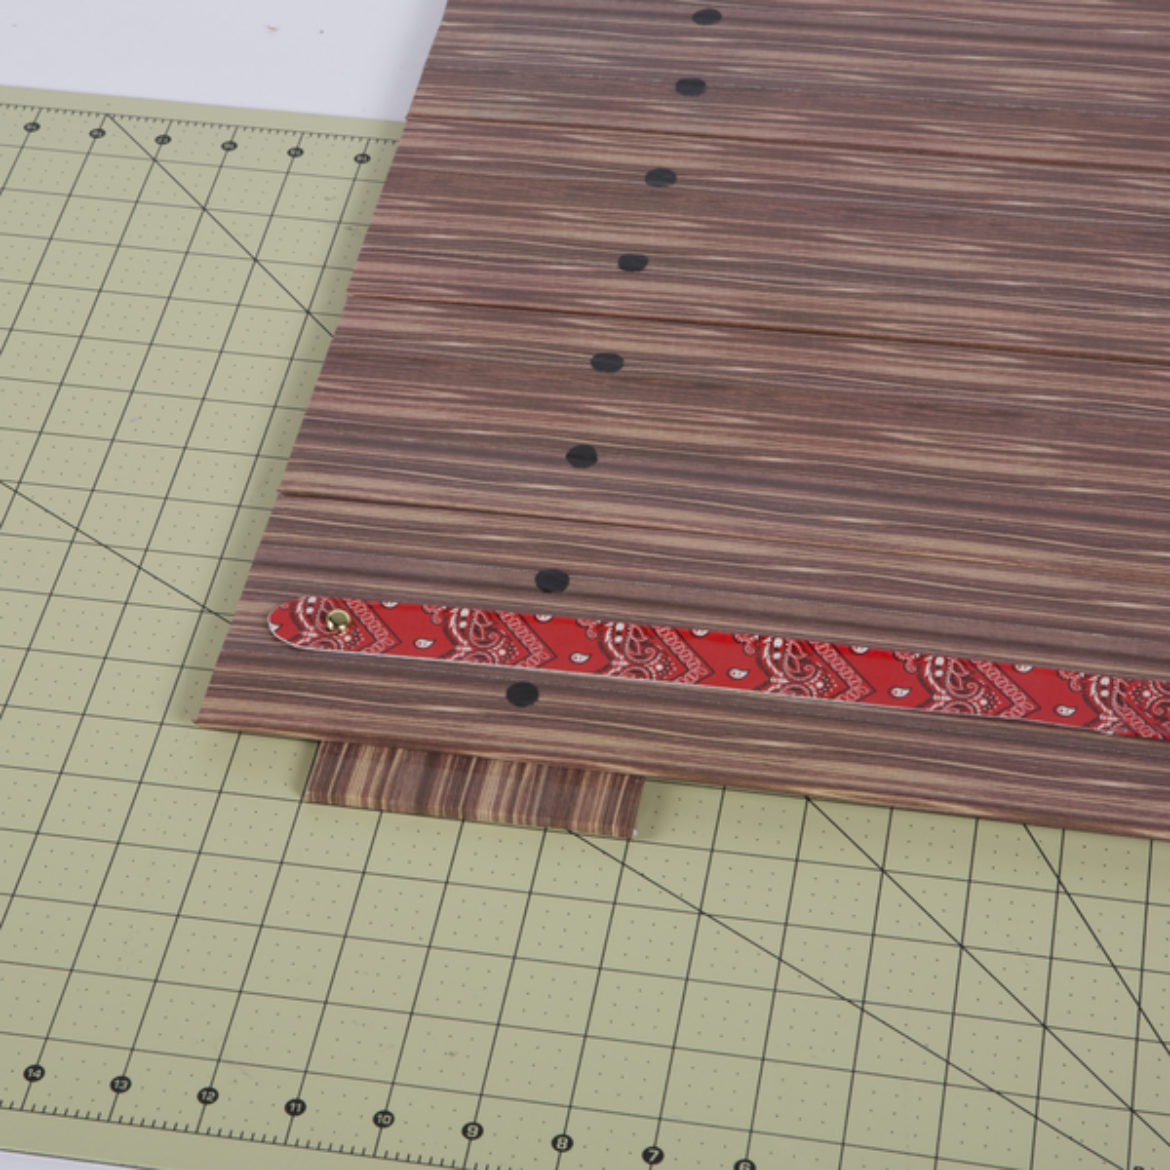 Strips made in the previous step attached to the center of the boards made in steps 1-3